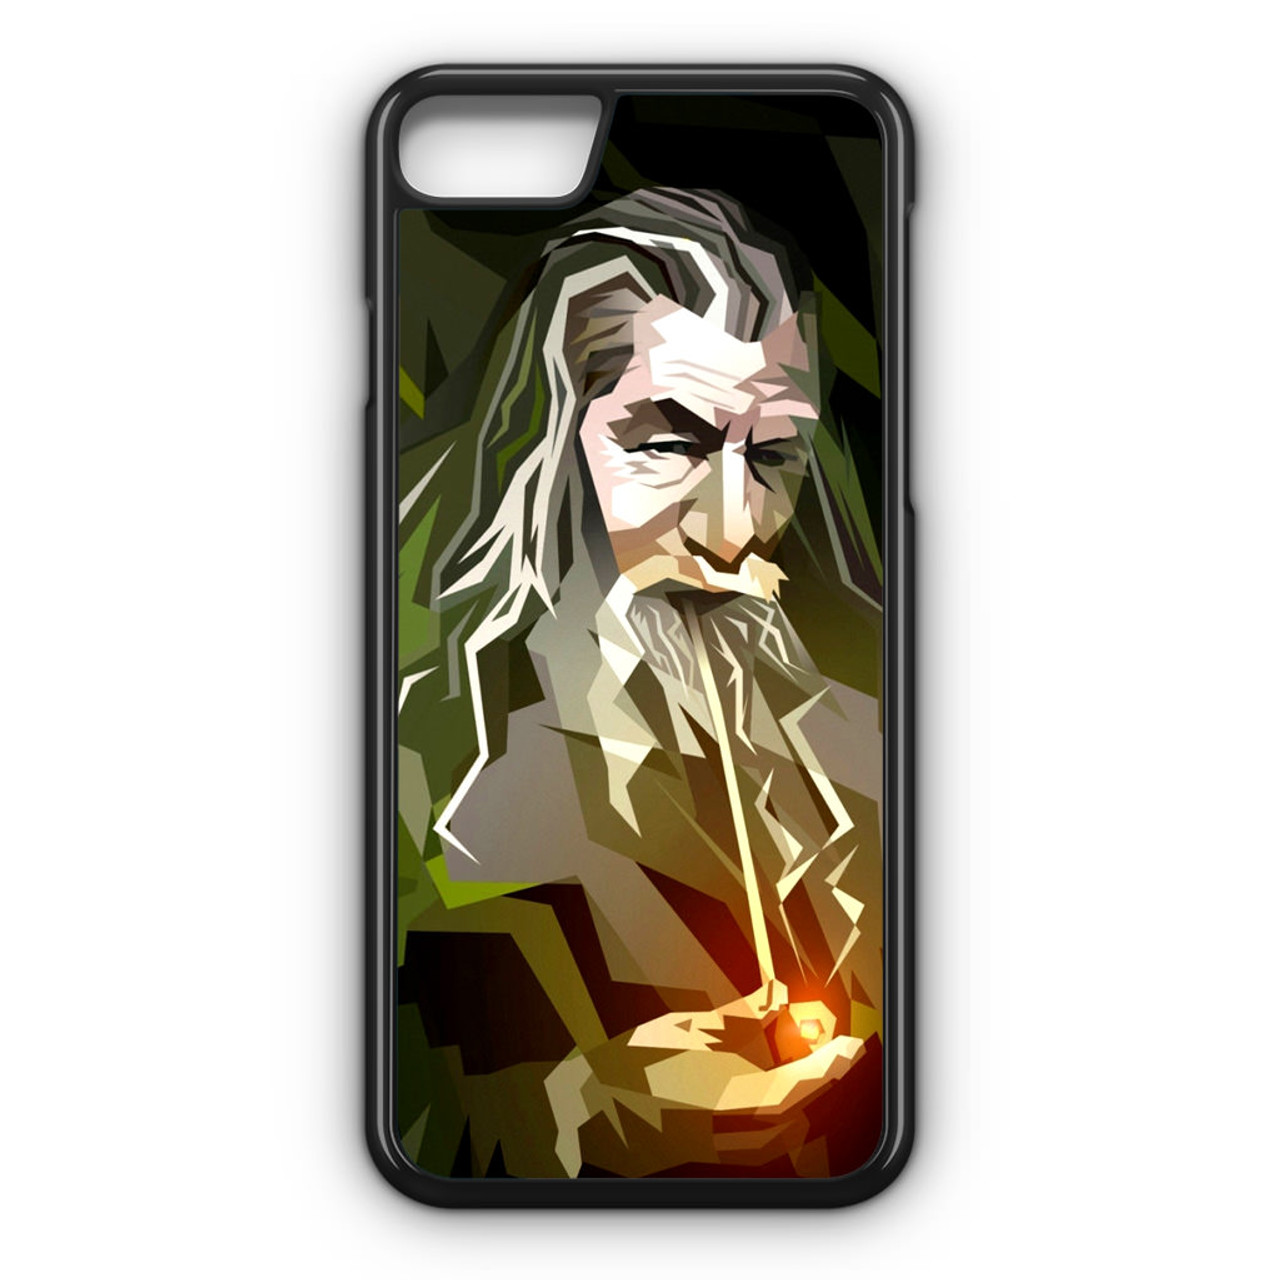 iphone 8 case gandalf